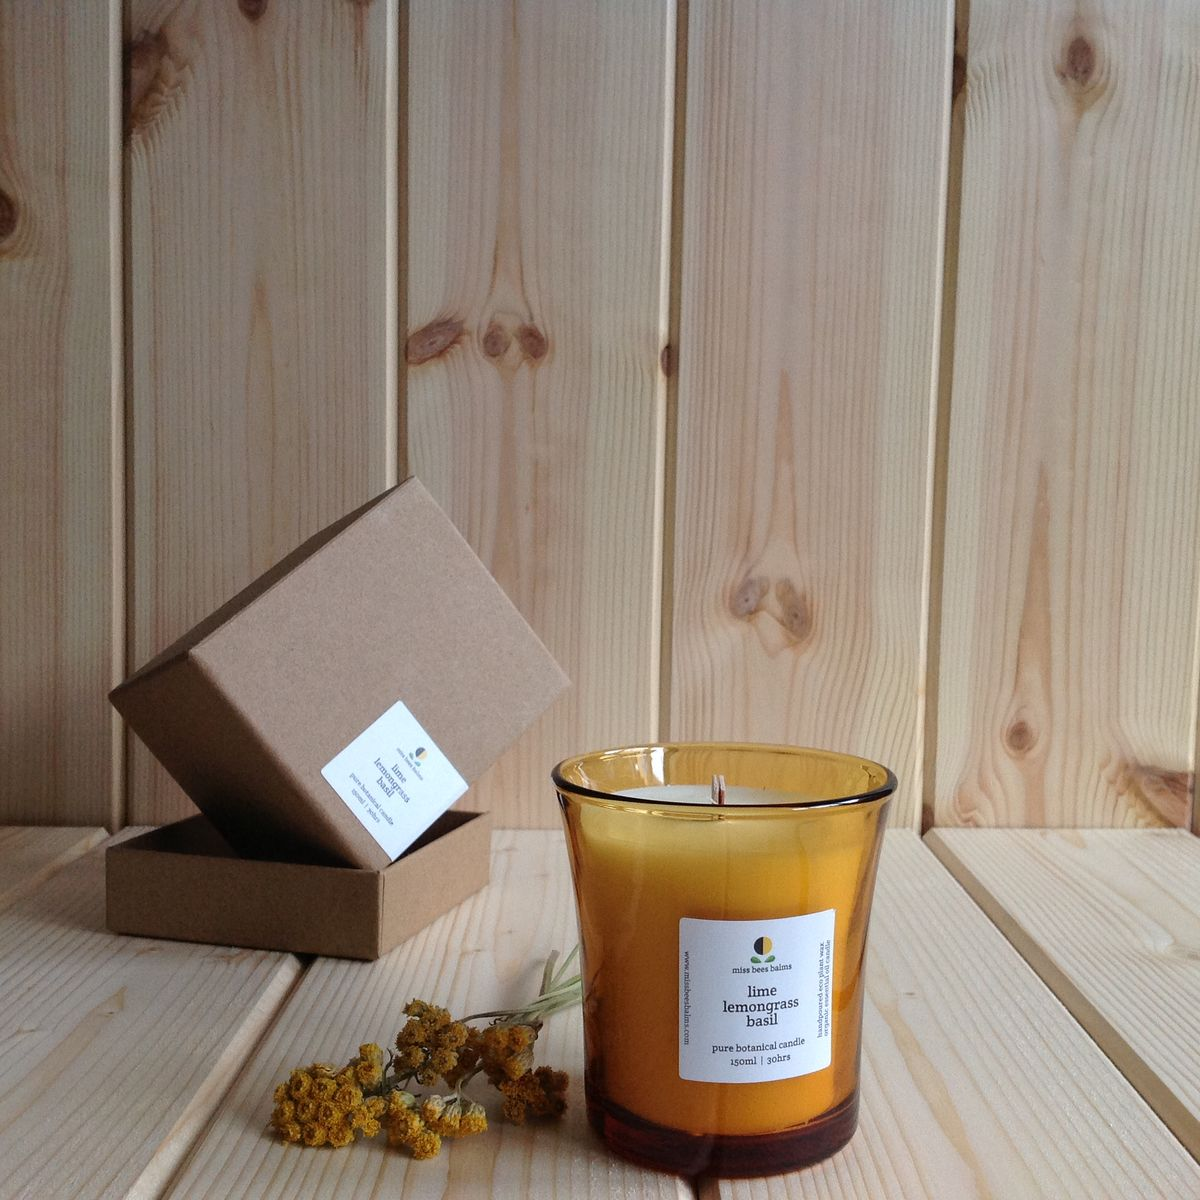 lime lemongrass basil pure botanical candle - product images  of